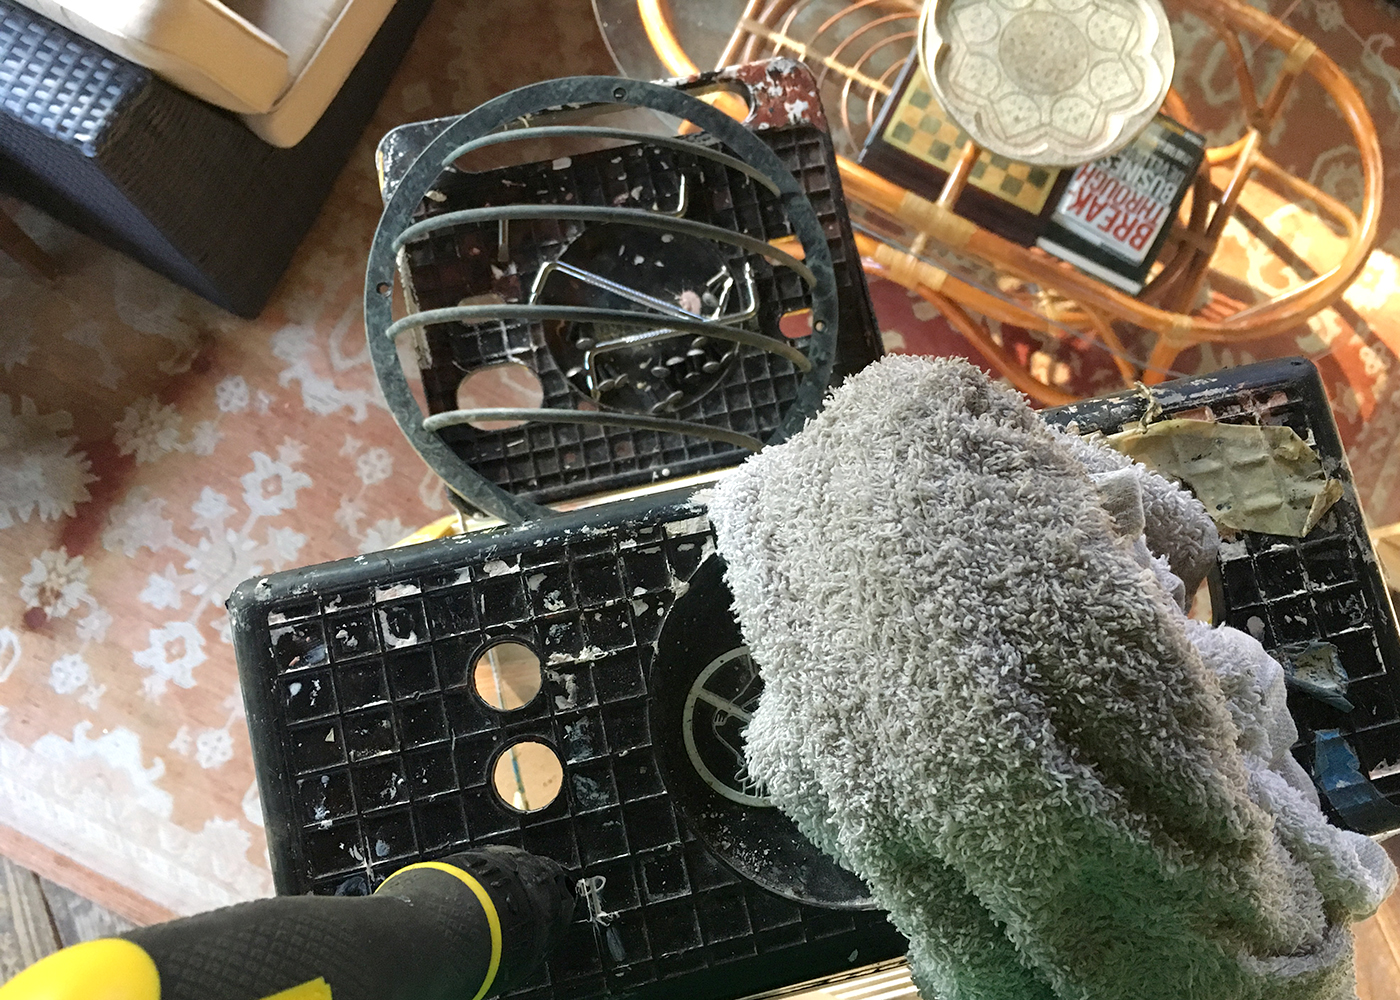 clean up the fan with a damp cloth